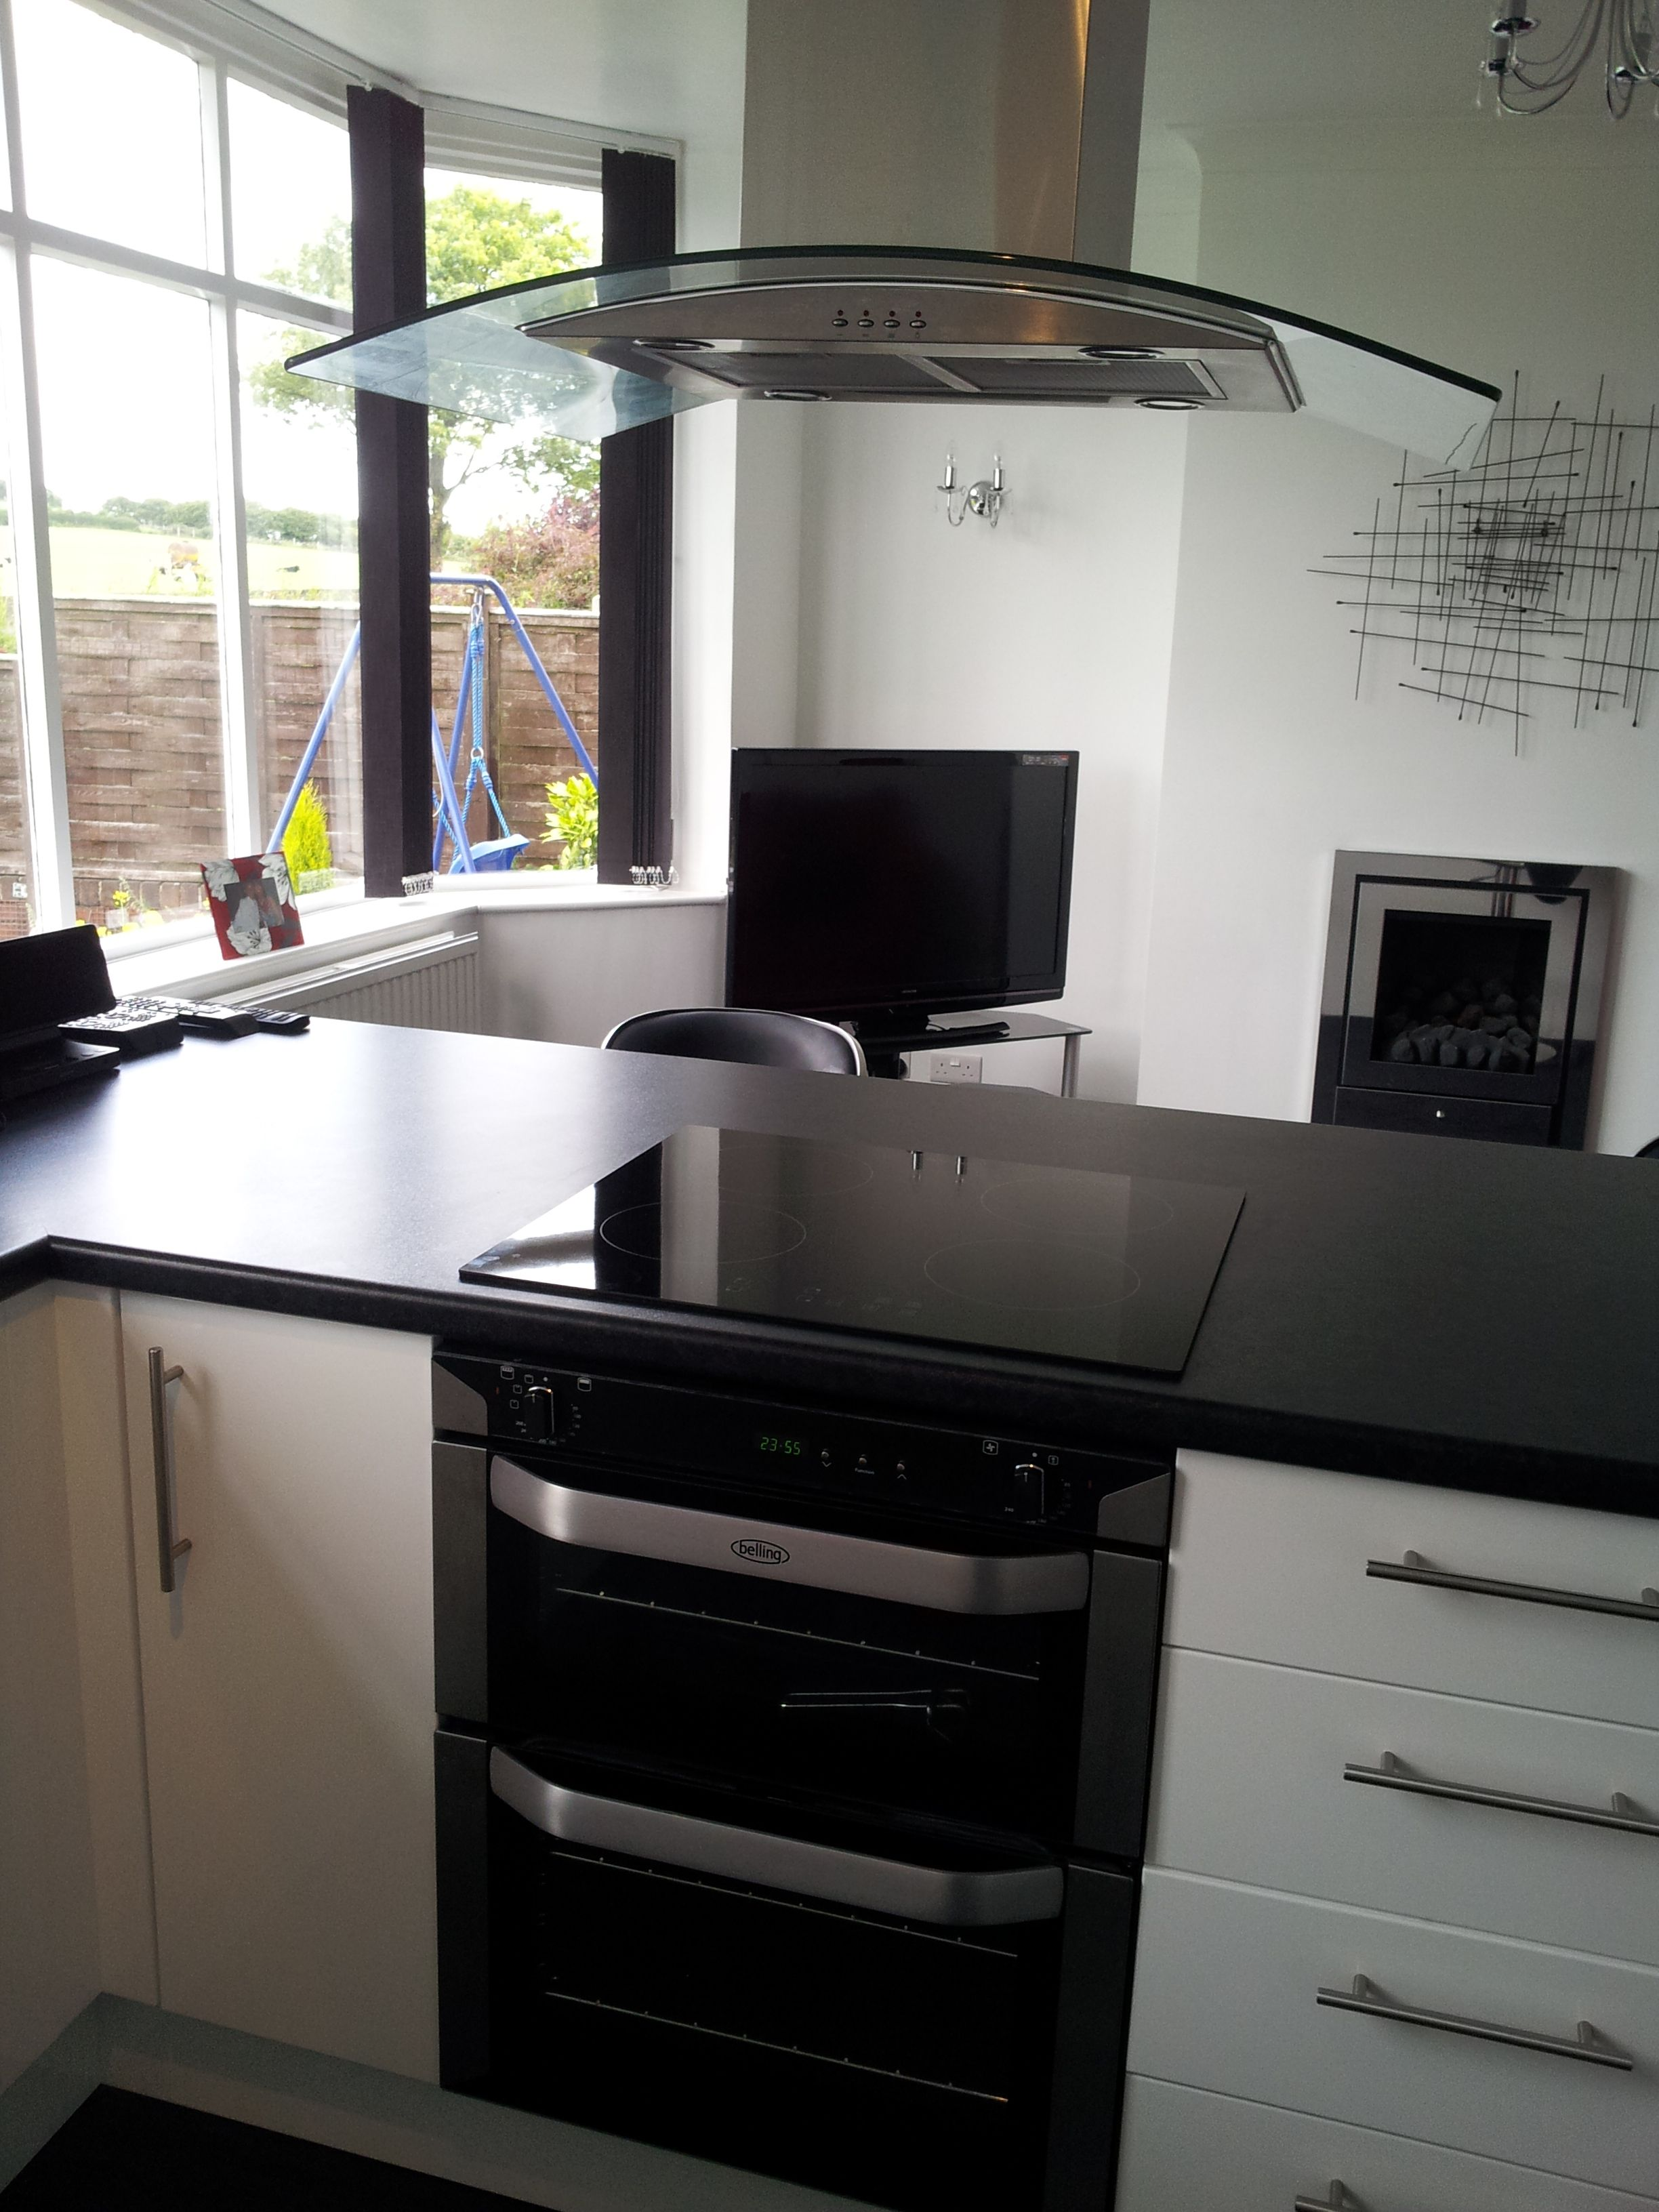 White Kitchen Hood sleek, modern black & white kitchen with breakfast bar, glass